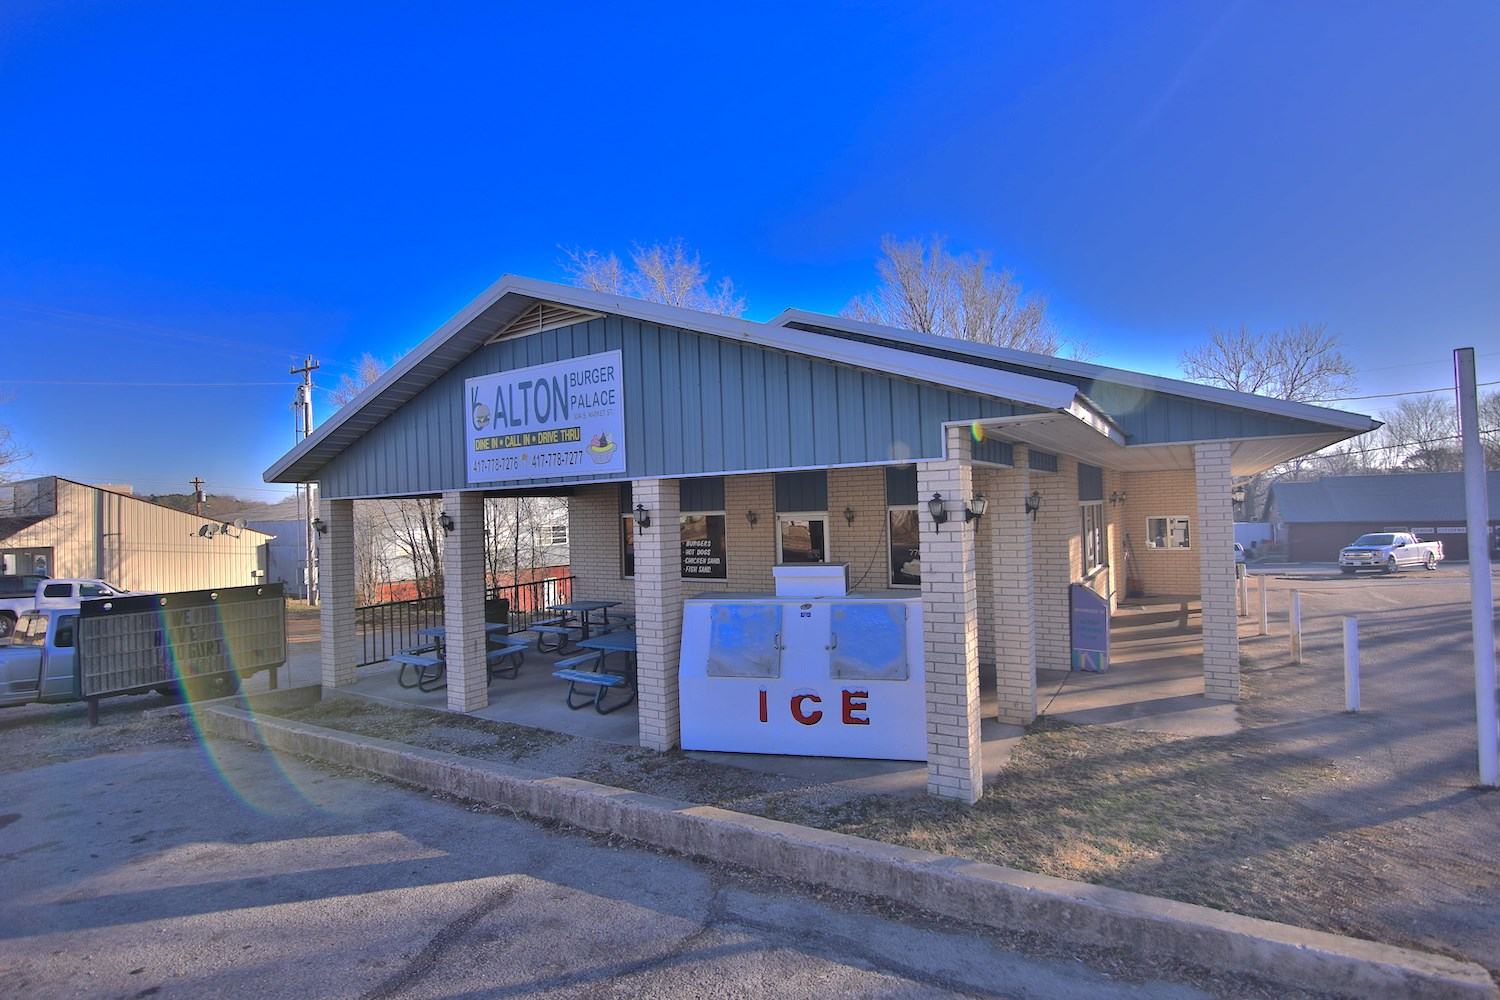 Commercial and Residential Property for sale in the Ozarks